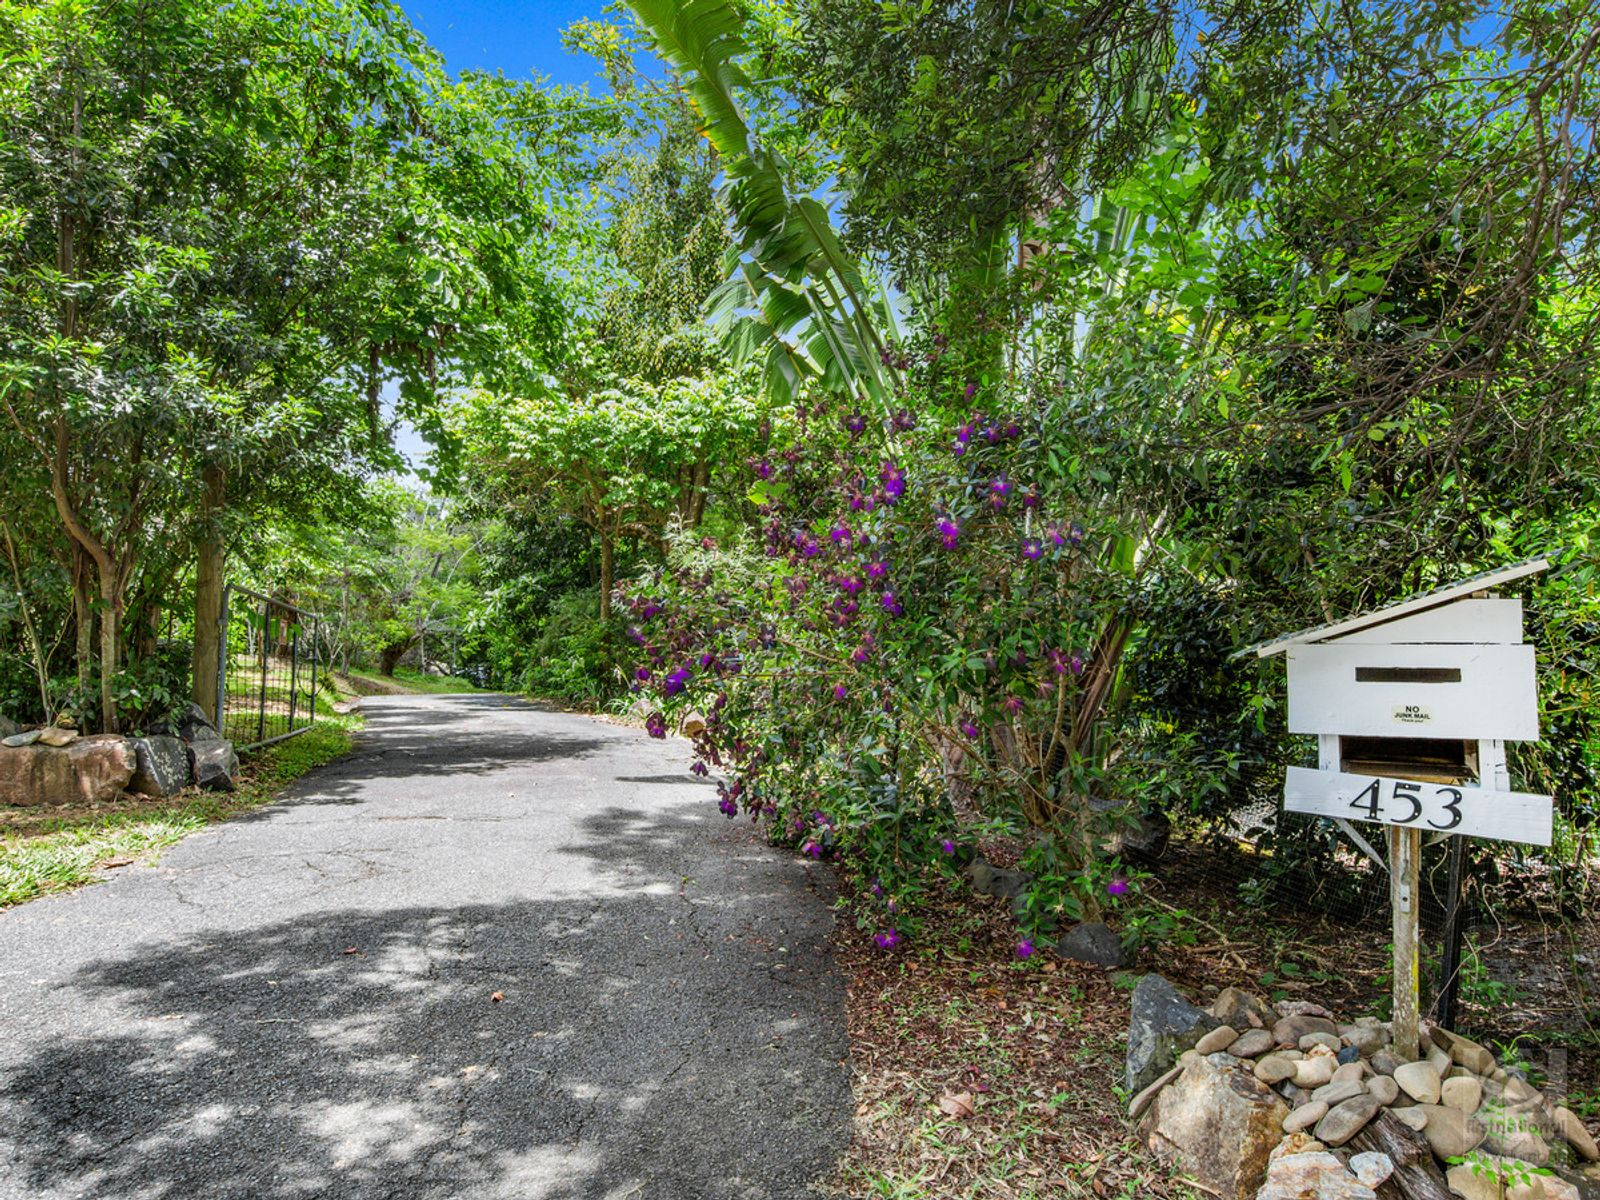 453 Tomewin Road, Dungay, NSW 2484